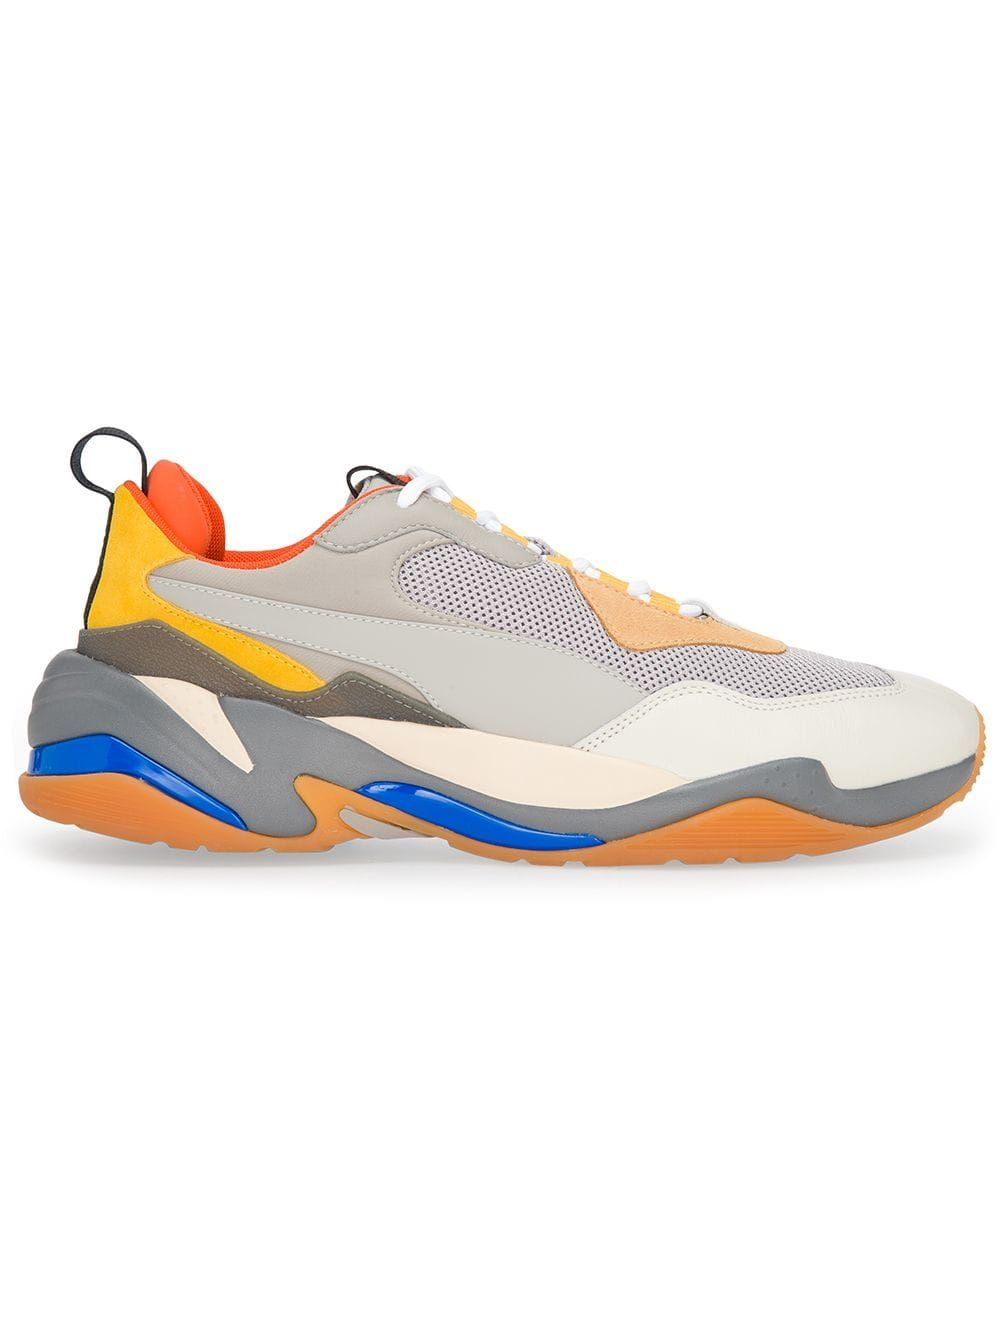 PUMA PUMA THUNDER SPECTRA SNEAKERS - GREY.  puma  shoes. Find this Pin and  more ... bd811f96b